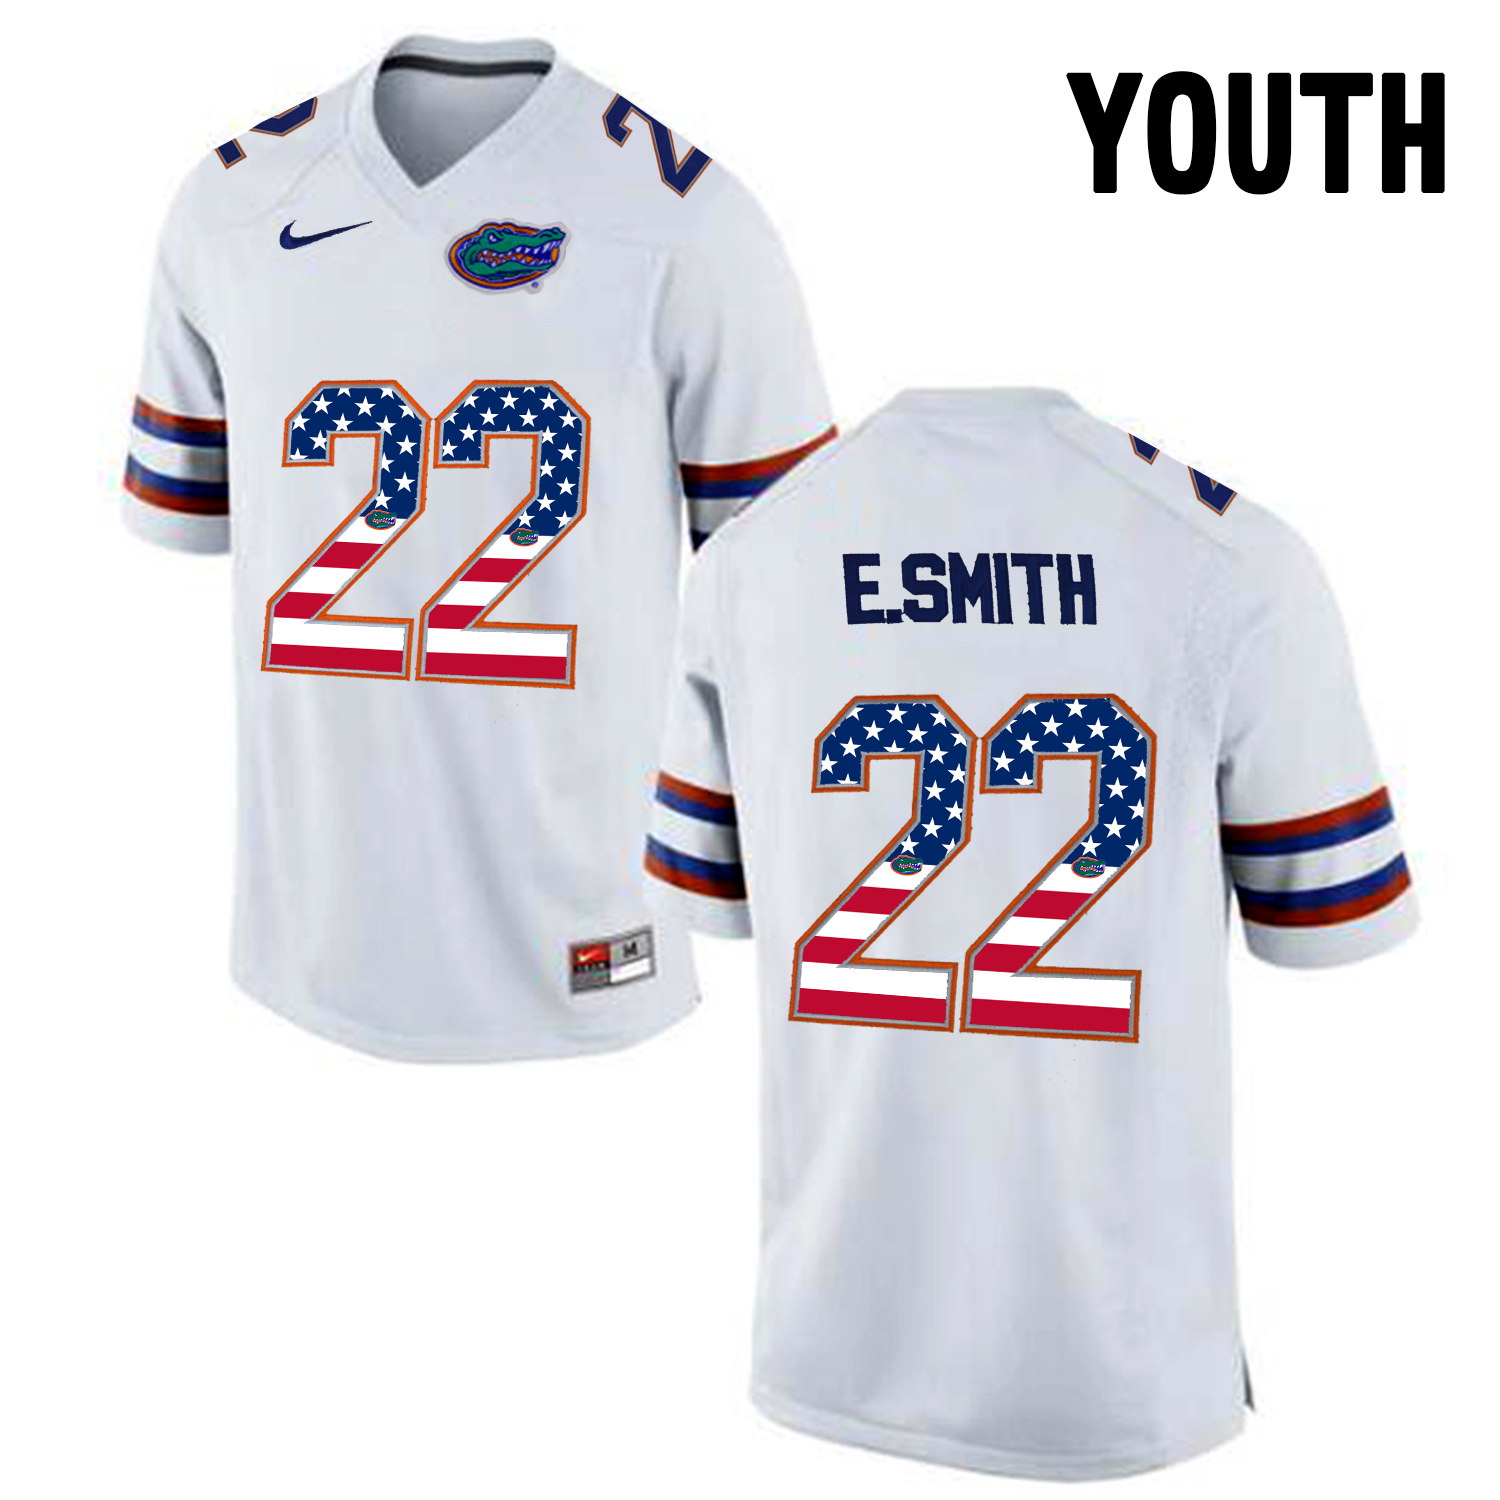 2016 US Flag Fashion Youth Florida Gators E.Smith 22 College Football Jersey White